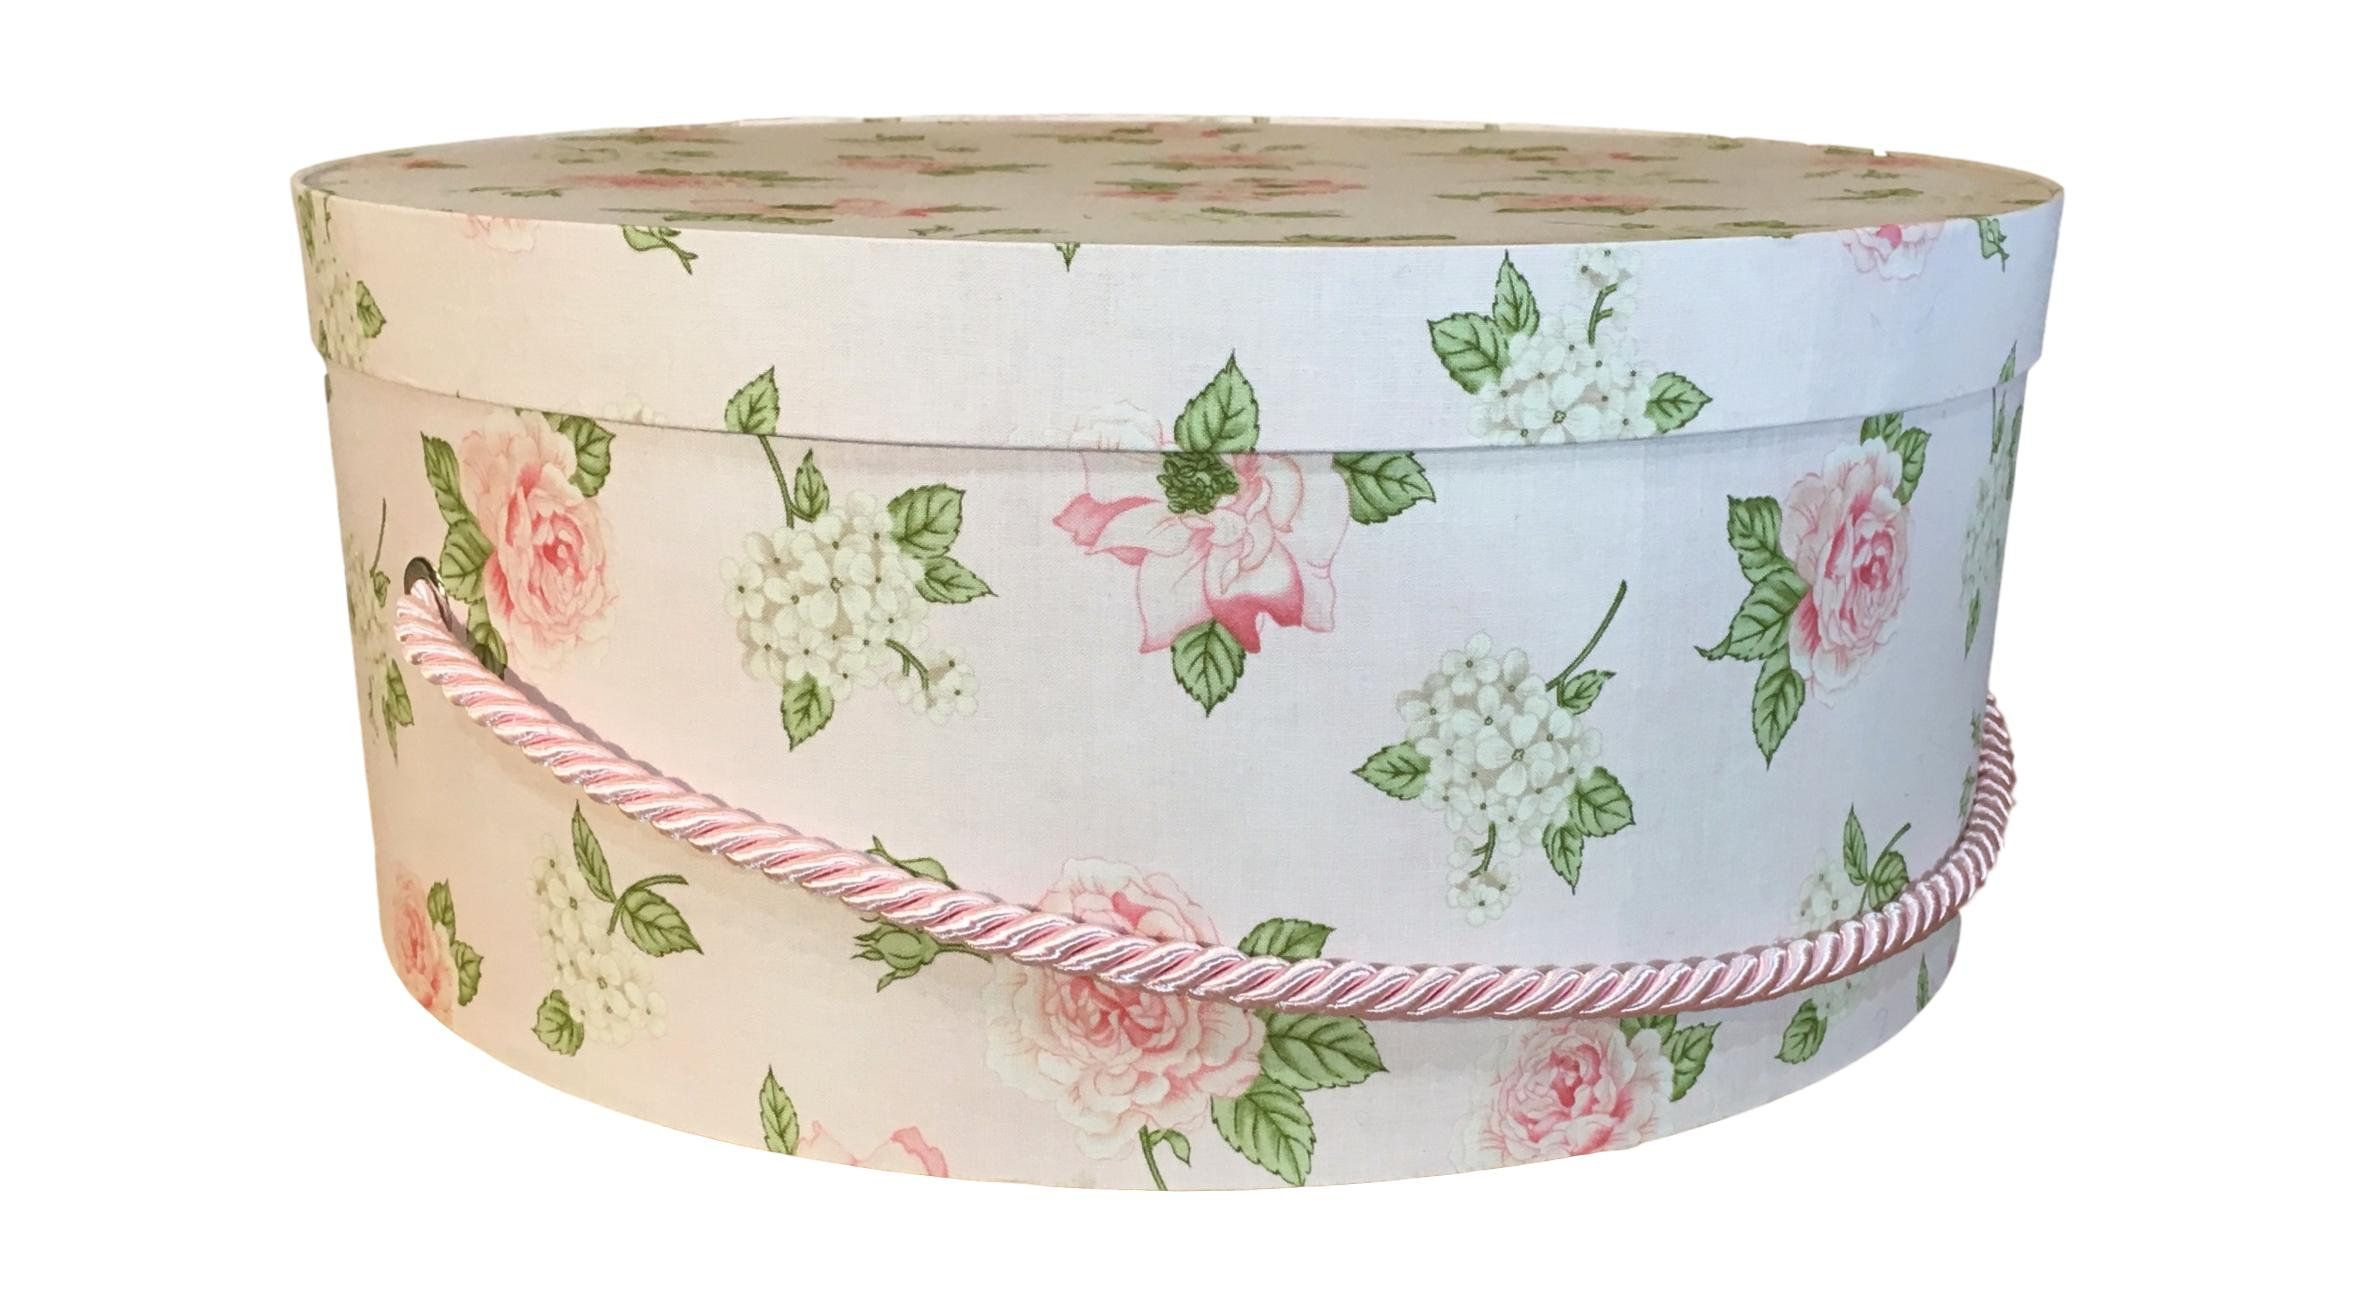 Large Hat Box In Light Pink Floral Large Decorative Fabric Covered Hat Boxes Round Storage Box Keepsake Boxes With Lid Nest Hat Box Fabric Decor Large Hats